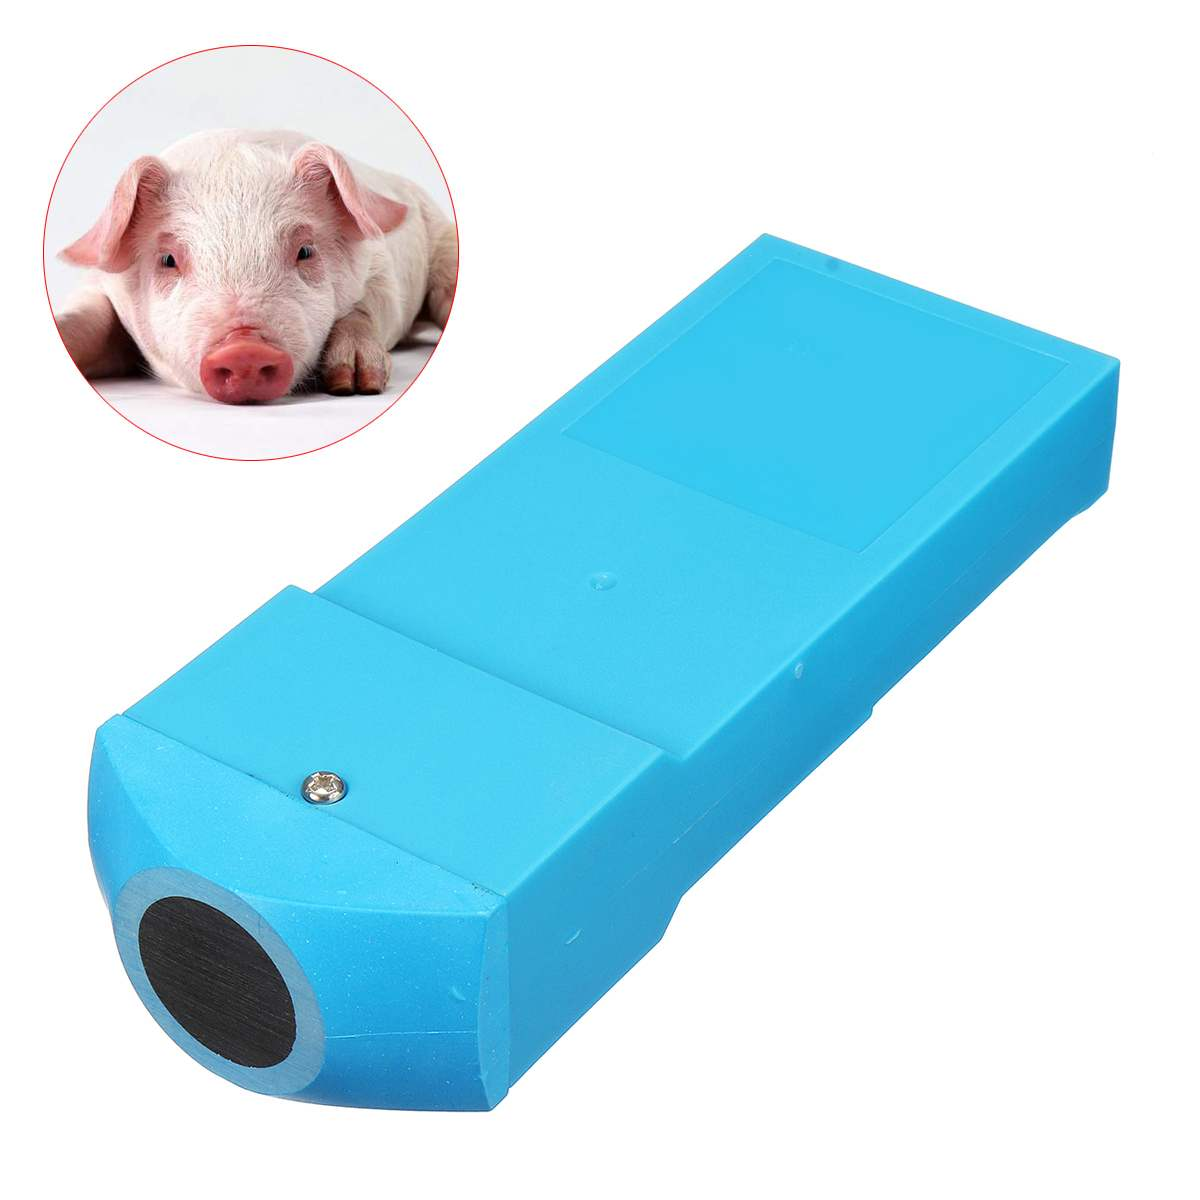 158x57x30mm Portable Ultrasound Ultrasonic Pregnancy Detector Test For Animal Pig Sow Blue Quick Pregnancy Tester Tool Machine158x57x30mm Portable Ultrasound Ultrasonic Pregnancy Detector Test For Animal Pig Sow Blue Quick Pregnancy Tester Tool Machine